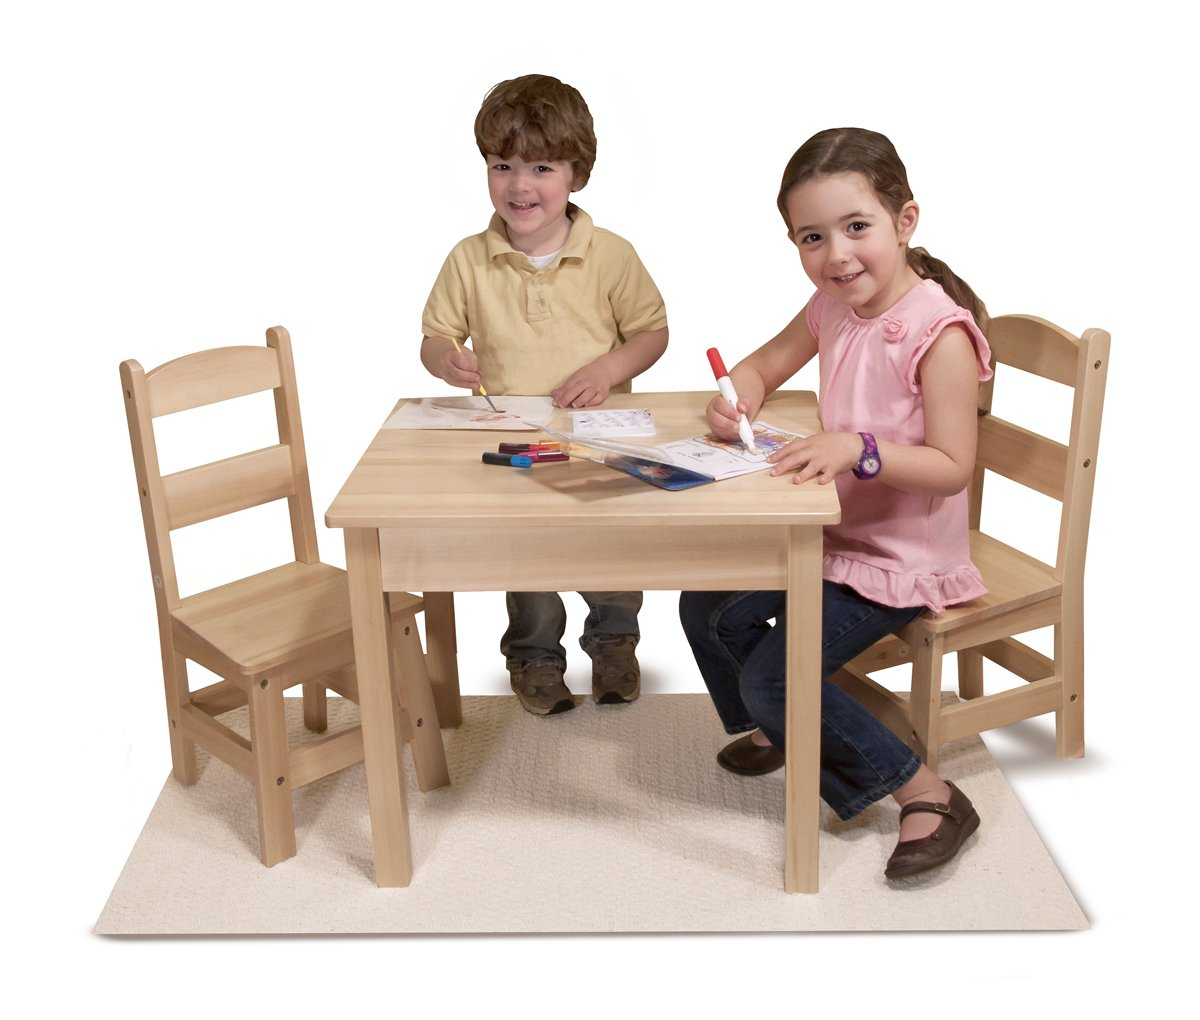 Amazon com  Melissa   Doug Solid Wood Table and 2 Chairs Set   Light Finish  Furniture for Playroom  Melissa   Doug  Toys   Games. Amazon com  Melissa   Doug Solid Wood Table and 2 Chairs Set